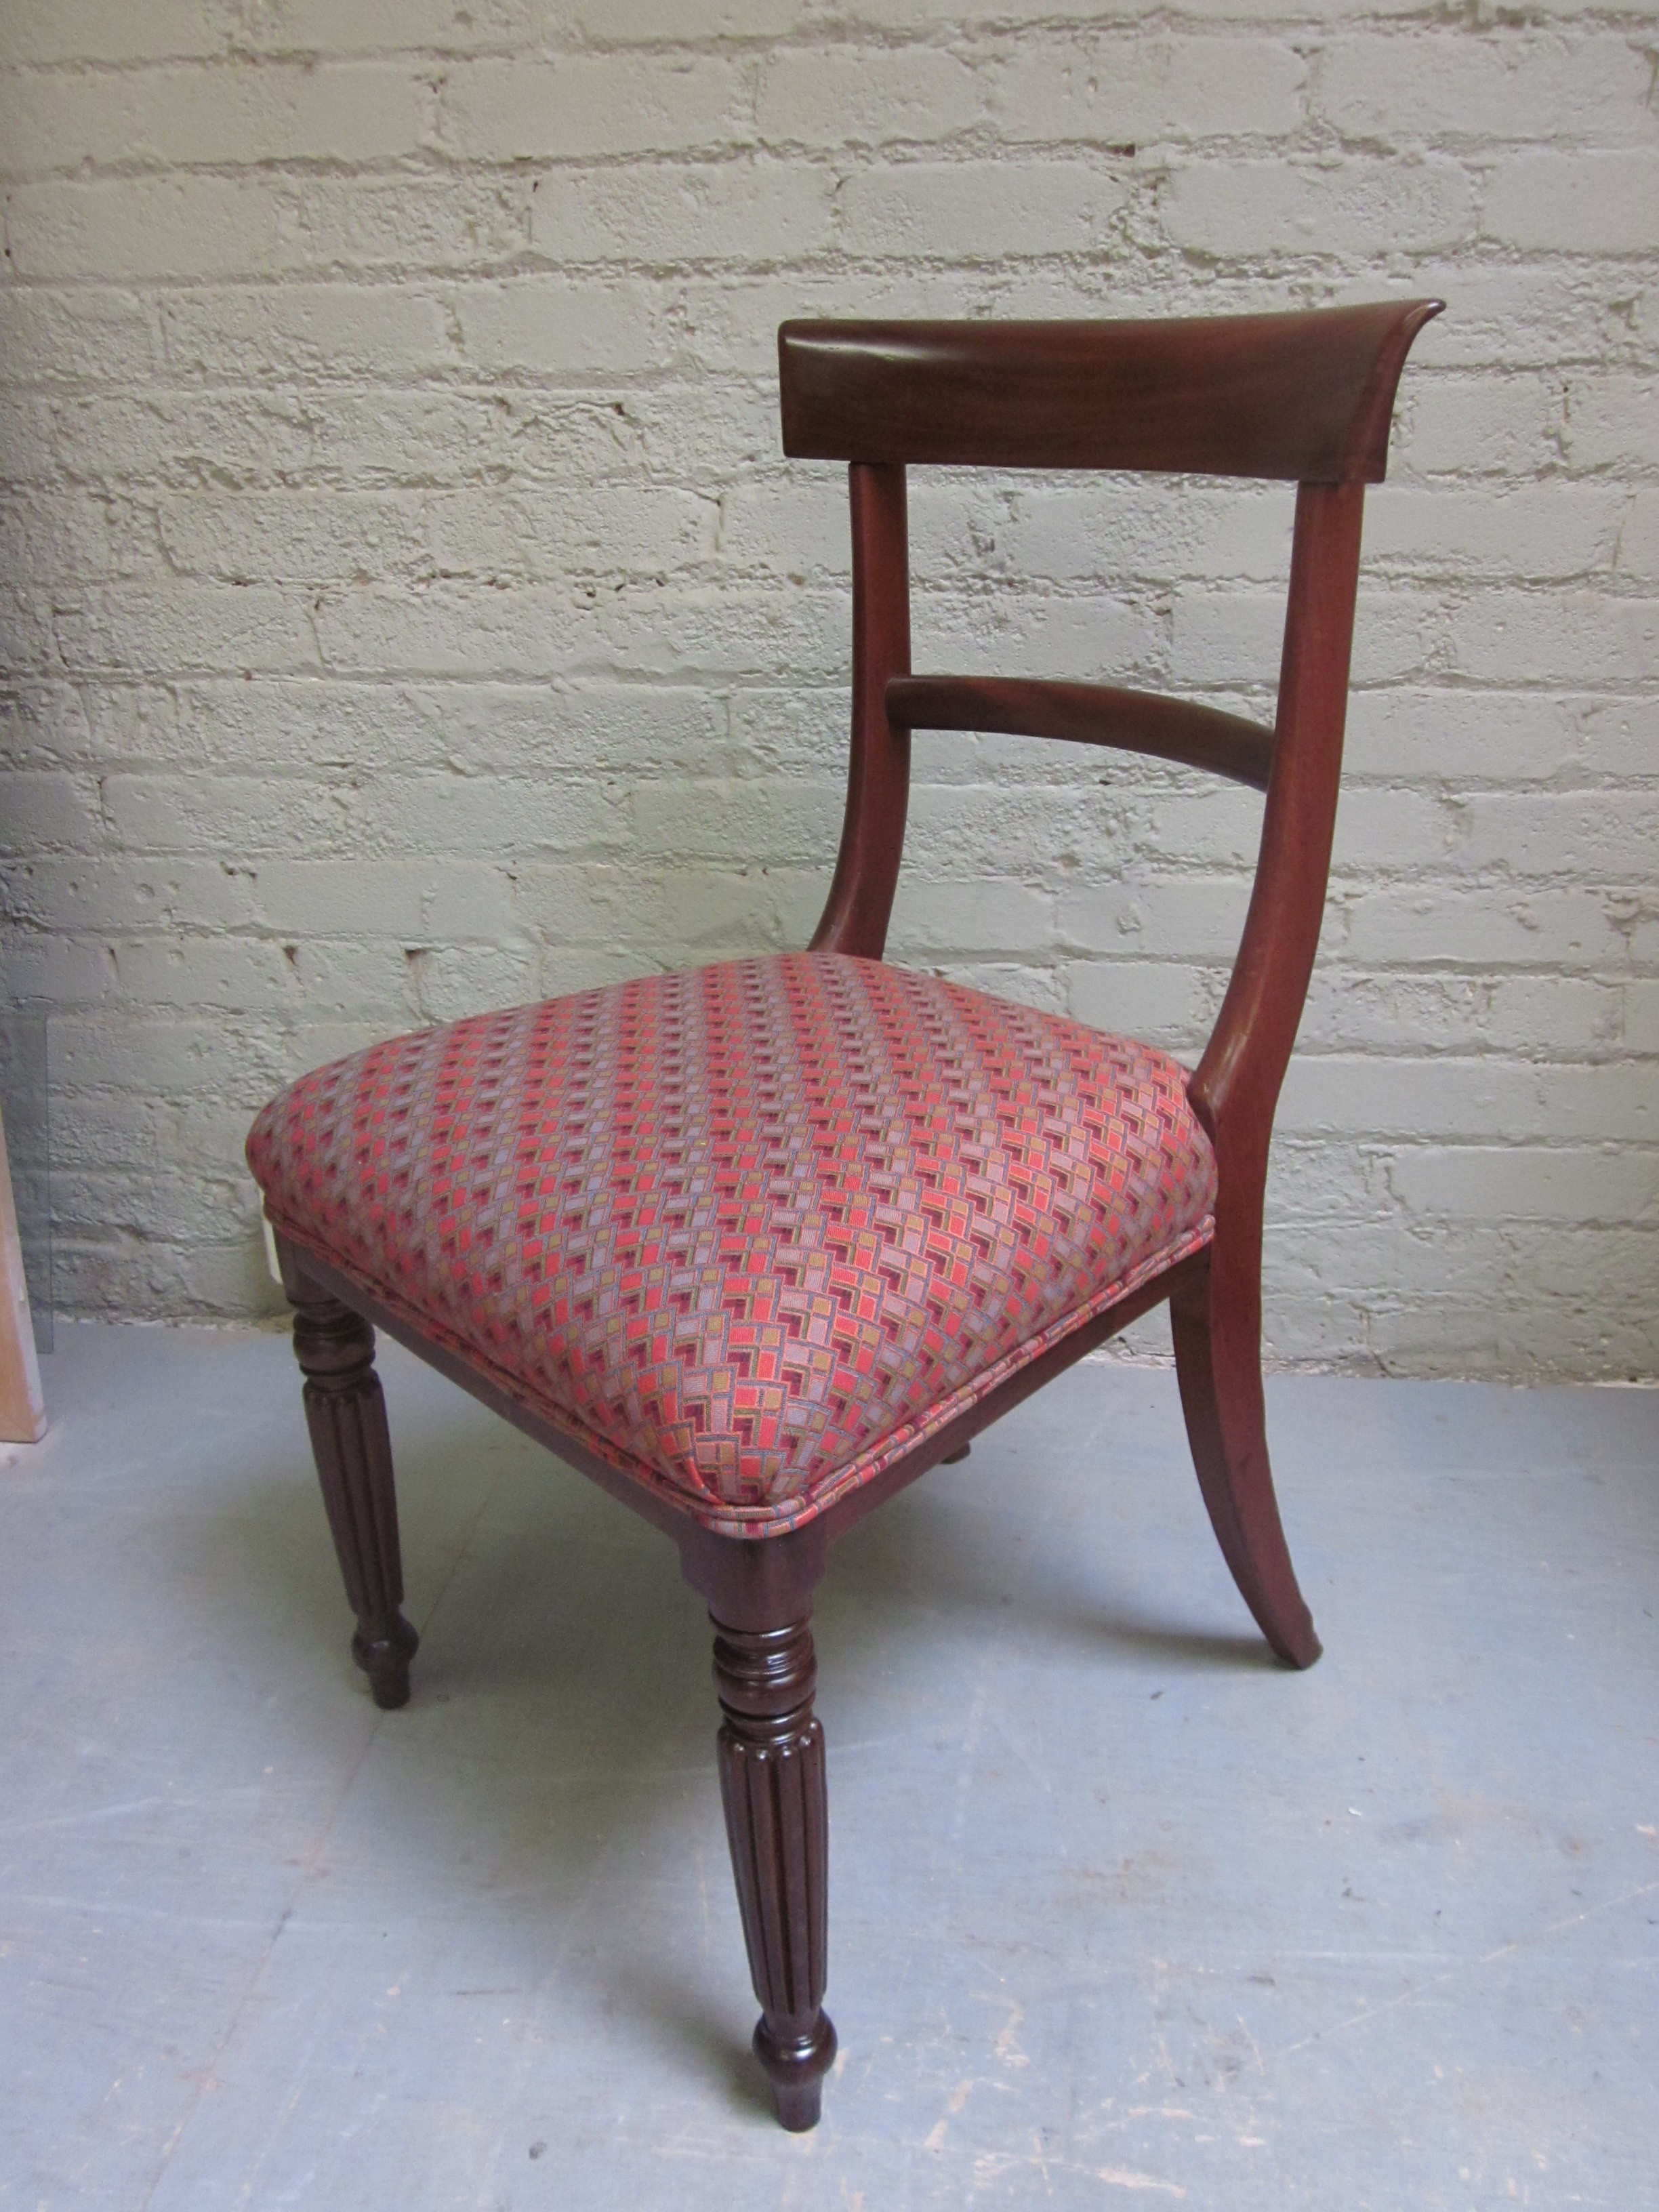 victorian chair refinished and re-upholstered